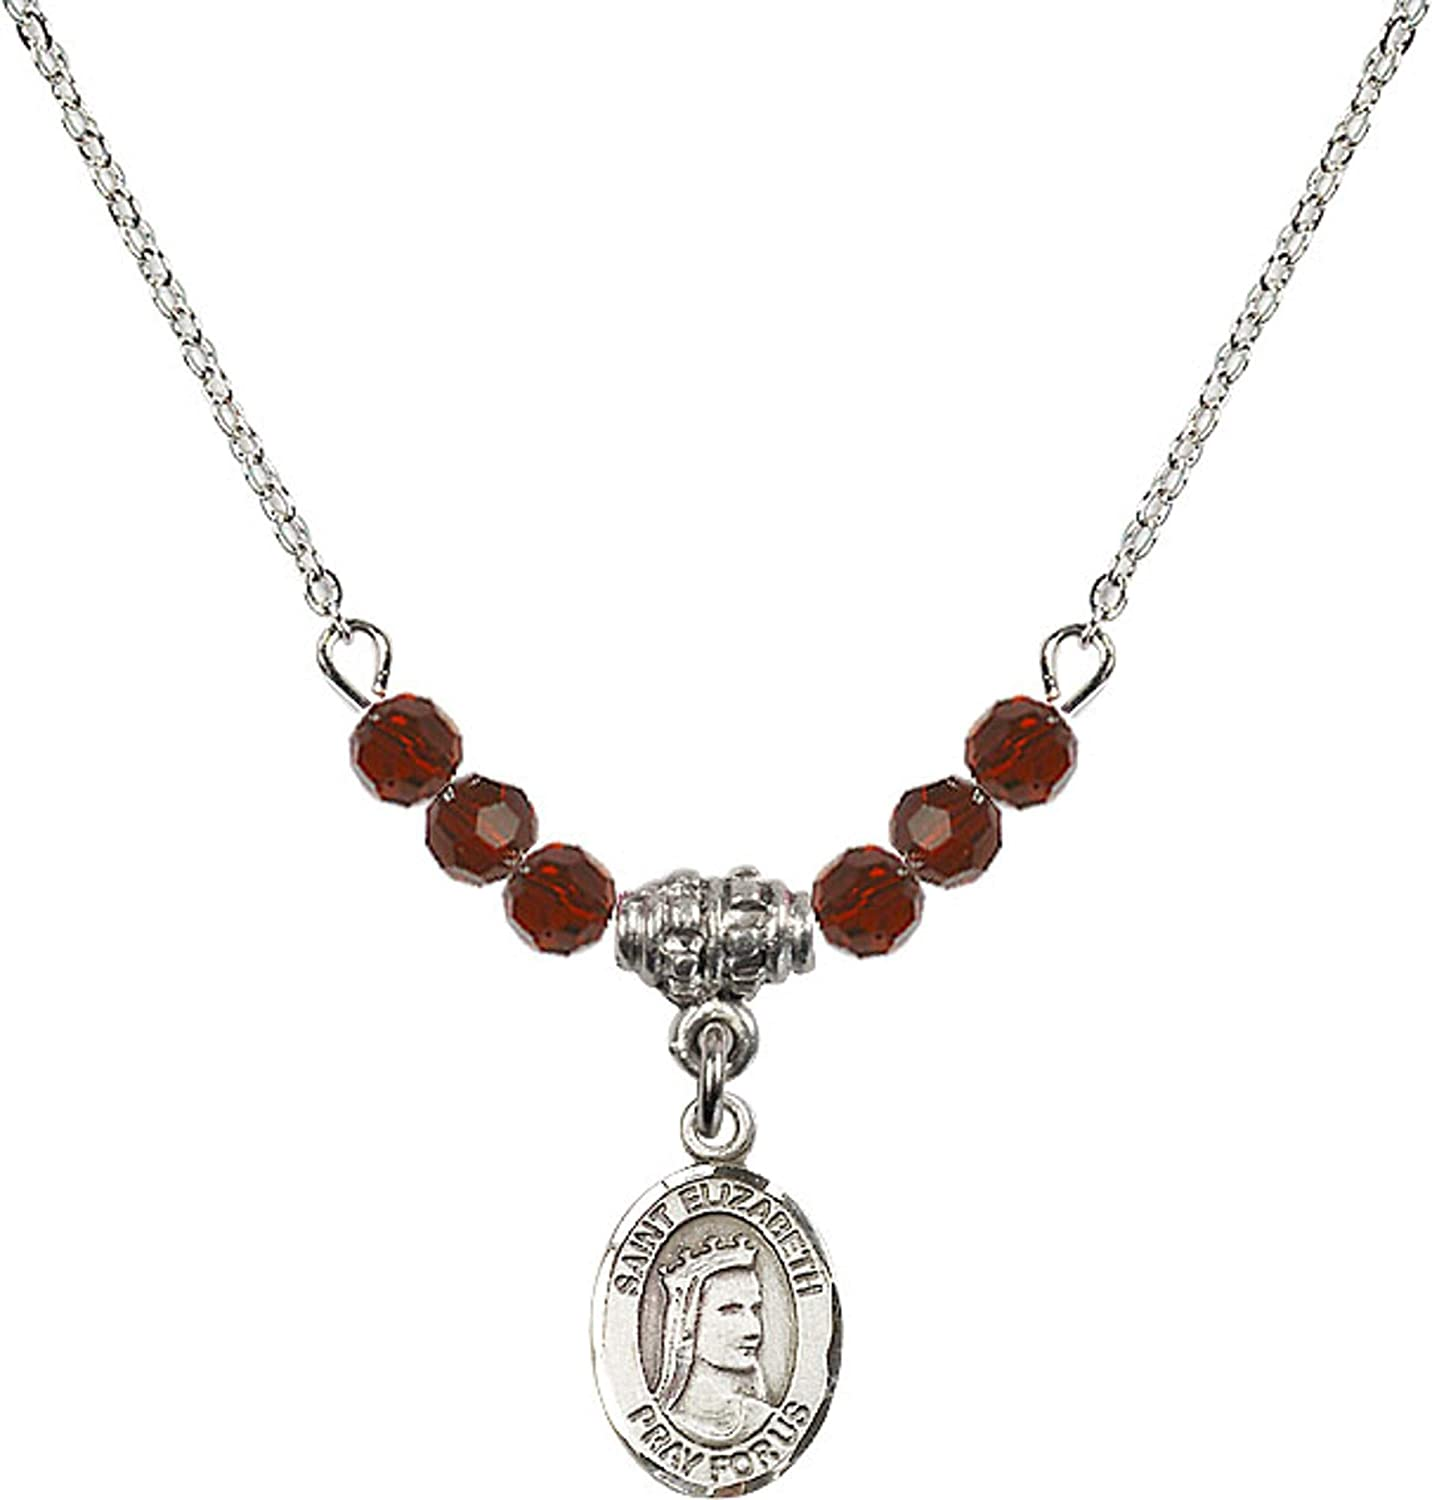 Bonyak Jewelry 18 Inch Rhodium Plated Necklace w// 4mm Red January Birth Month Stone Beads and Saint Elizabeth of Hungary Charm